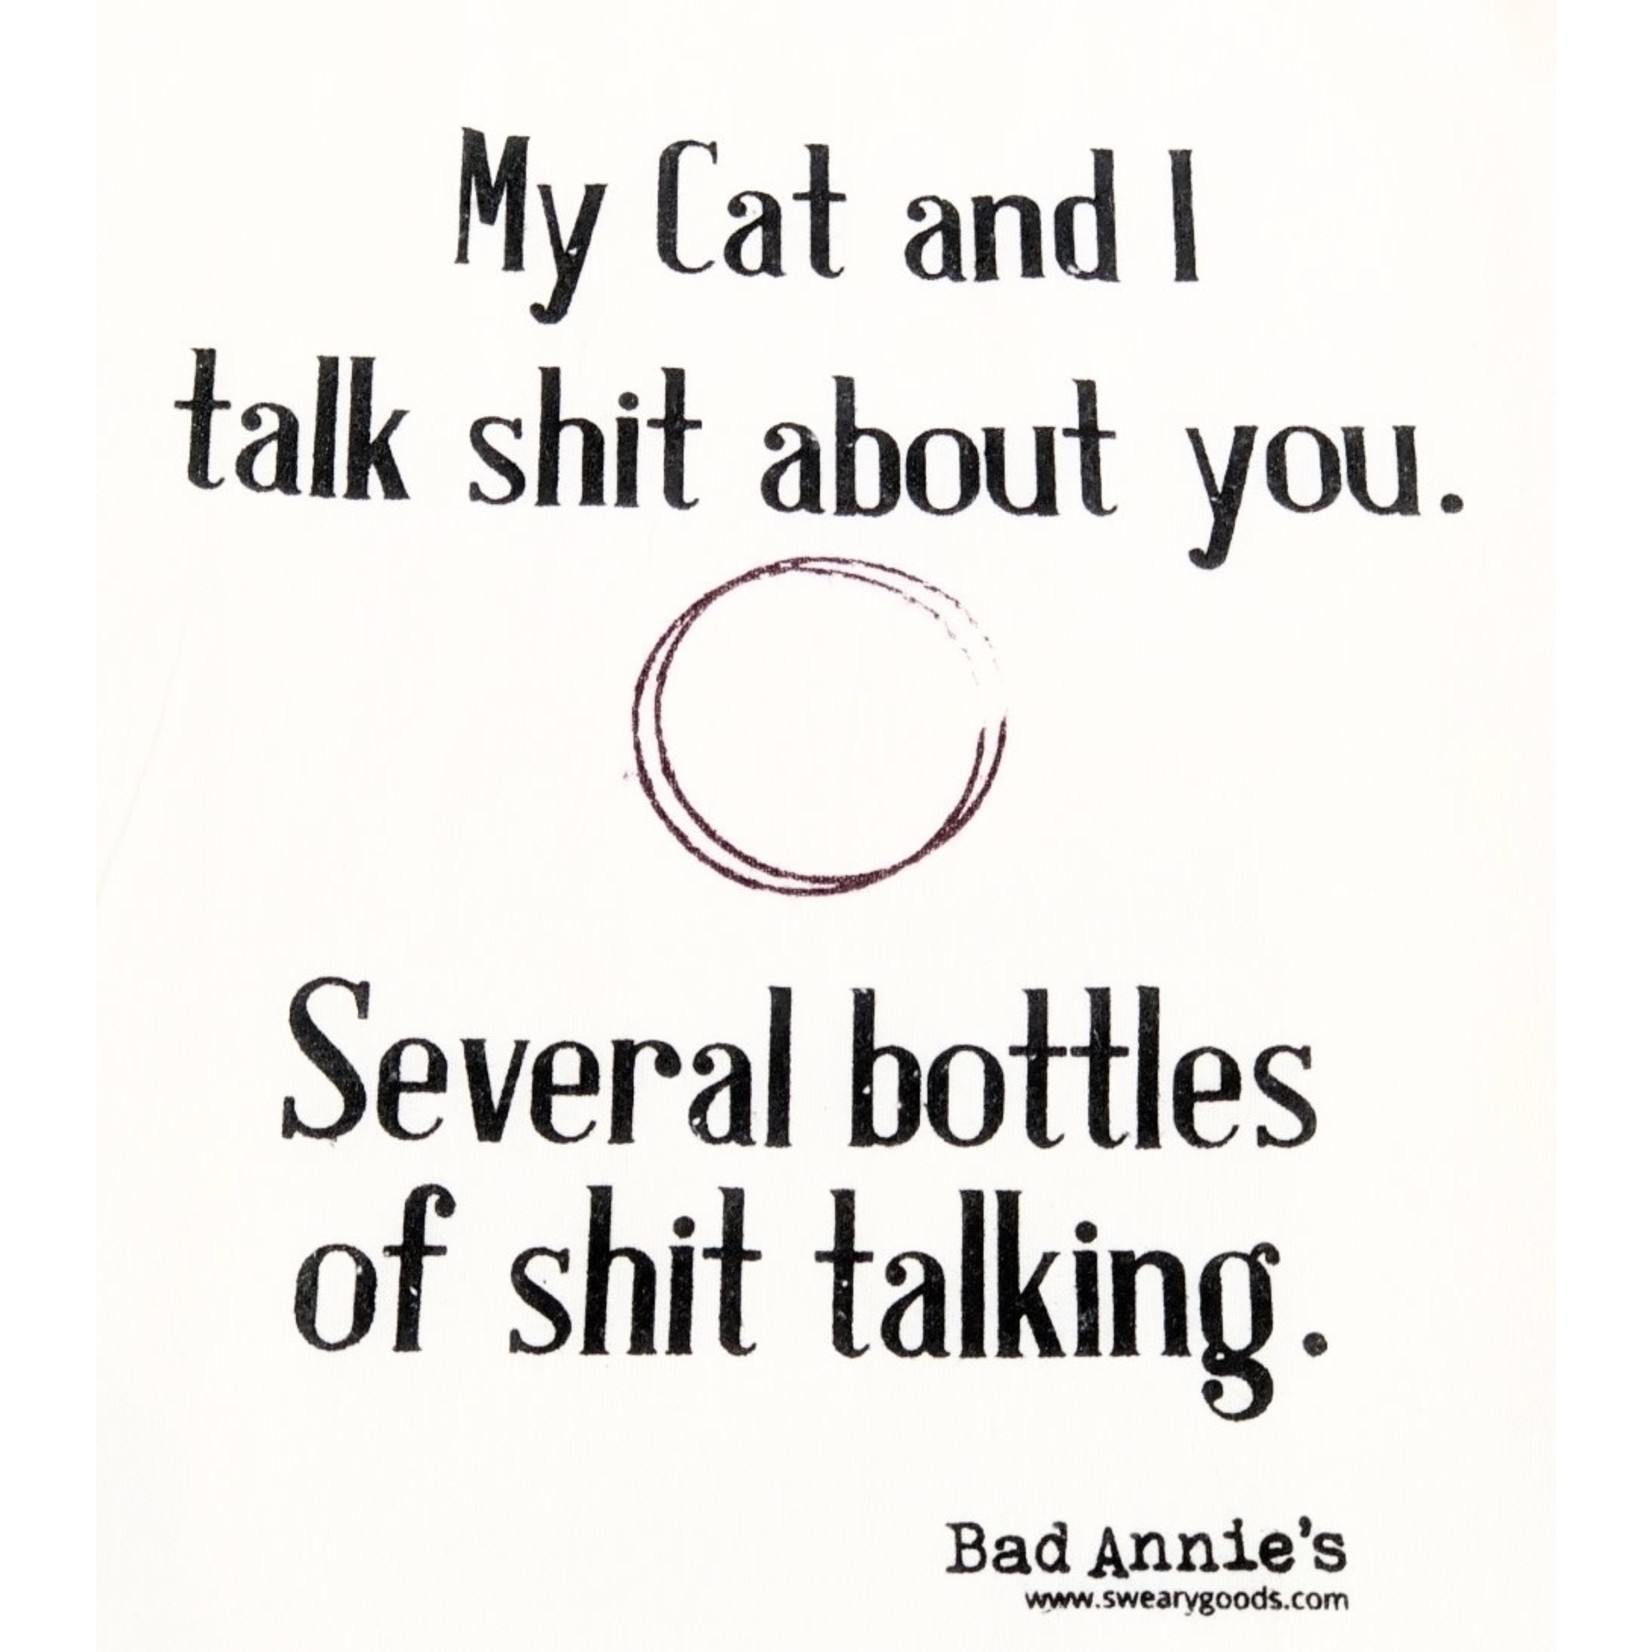 Bad Annie's Dish Towel - My Cat And I Talk Shit About You